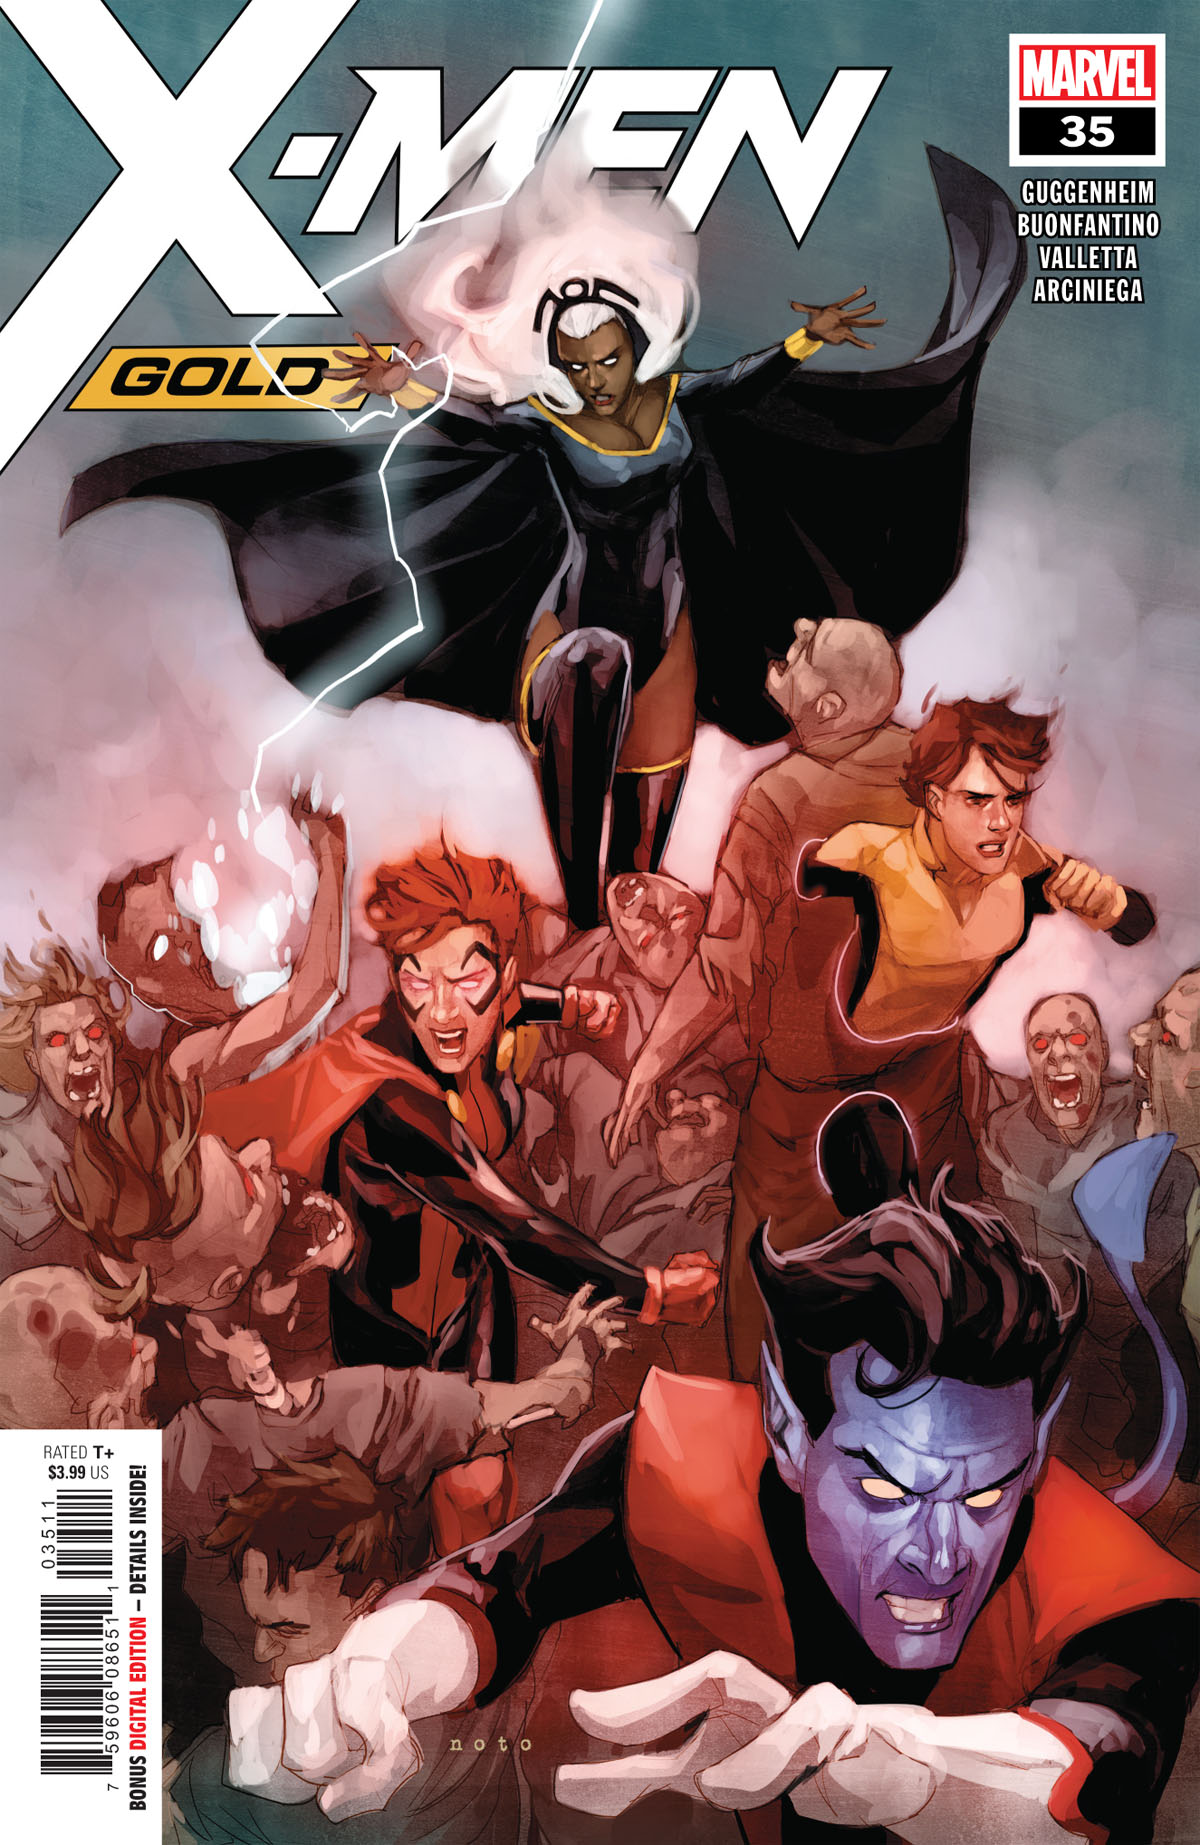 X-Men Gold #35 cover